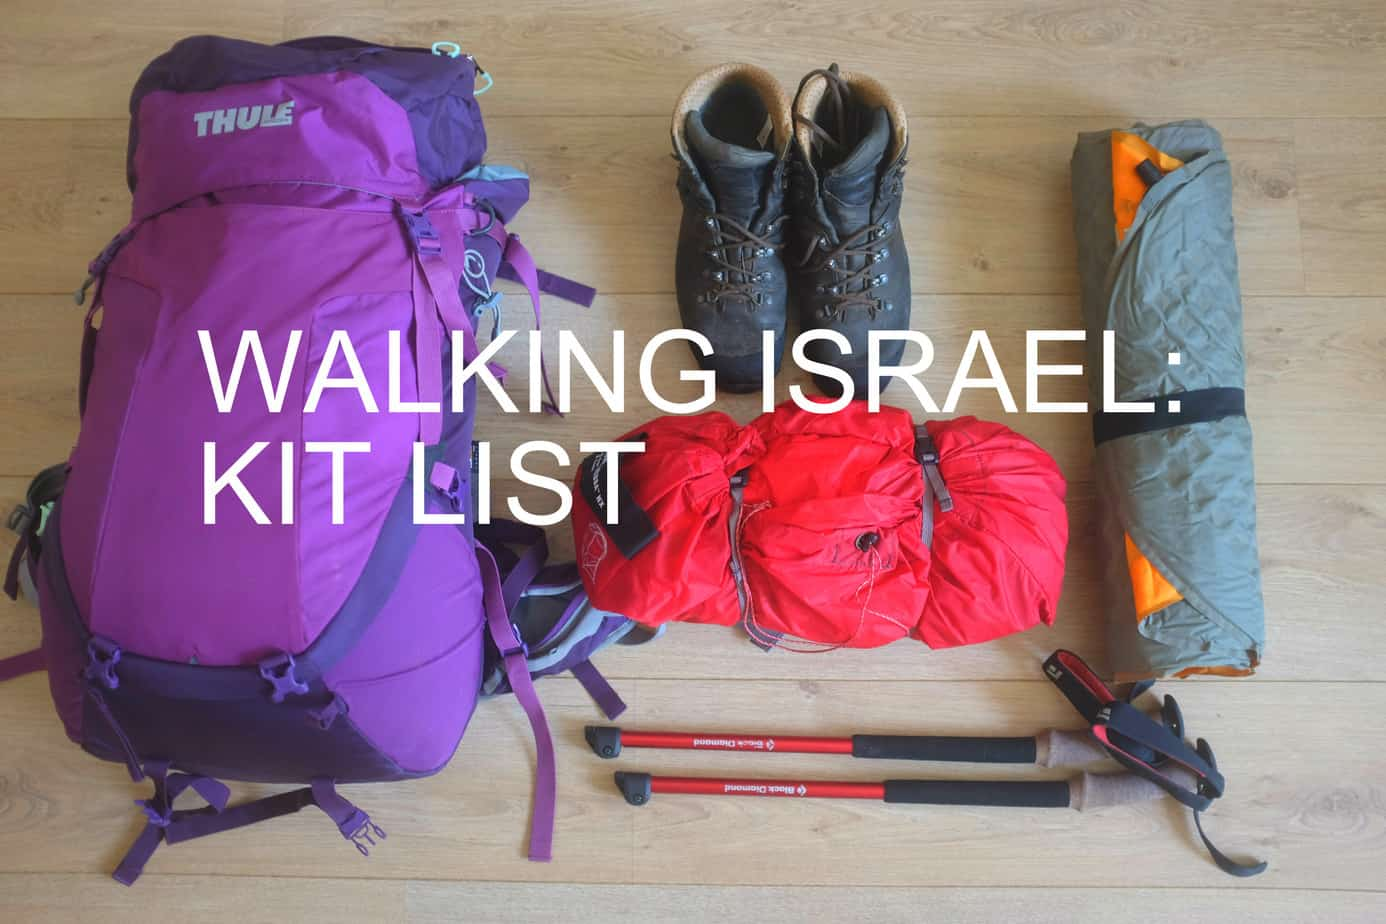 Israel Kit List